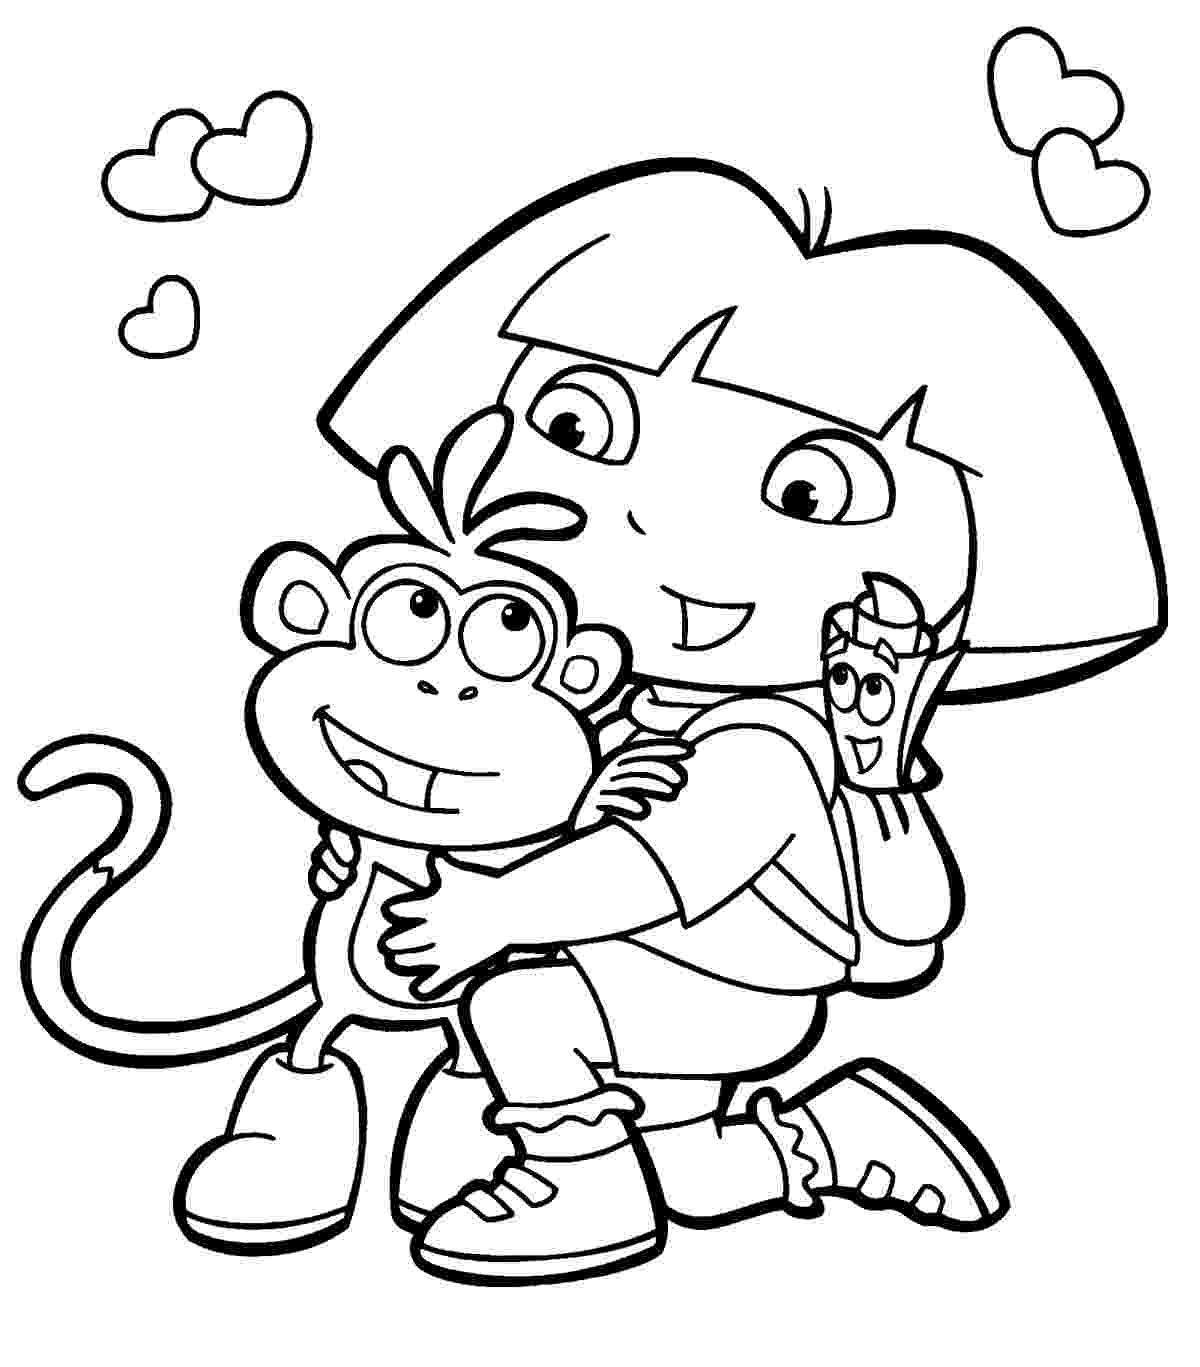 dora explorer coloring dora the explorer coloring pages free printable pictures dora coloring explorer